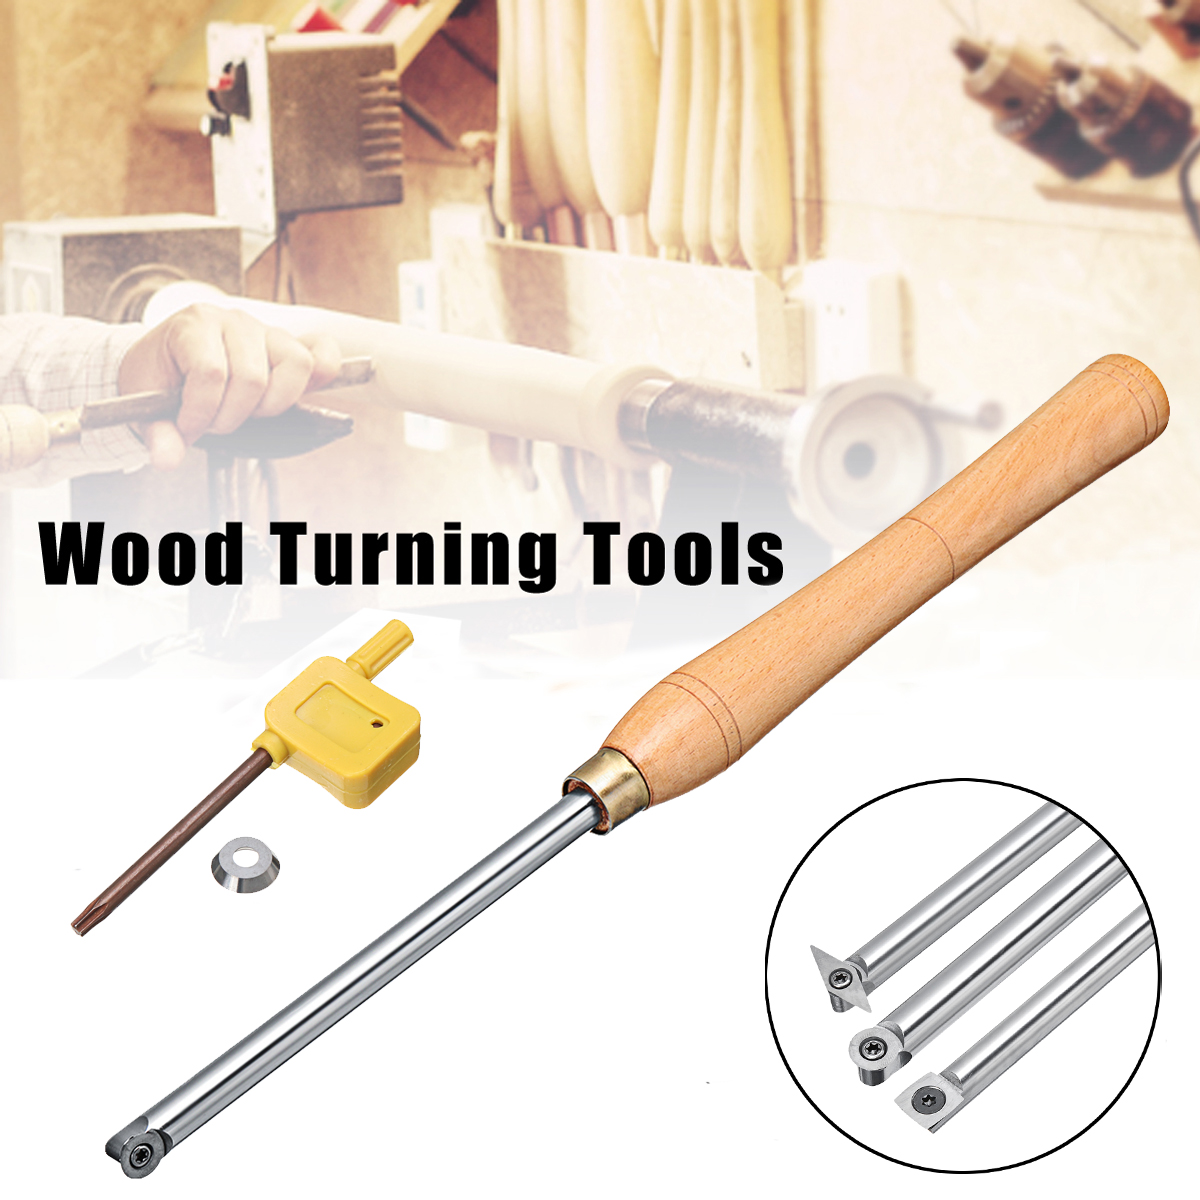 Wood Turning Carbide Tools Carbide Lover Tools Straight Set Diamond Round Or Square Carbide Tipped Woodworking Tool цена